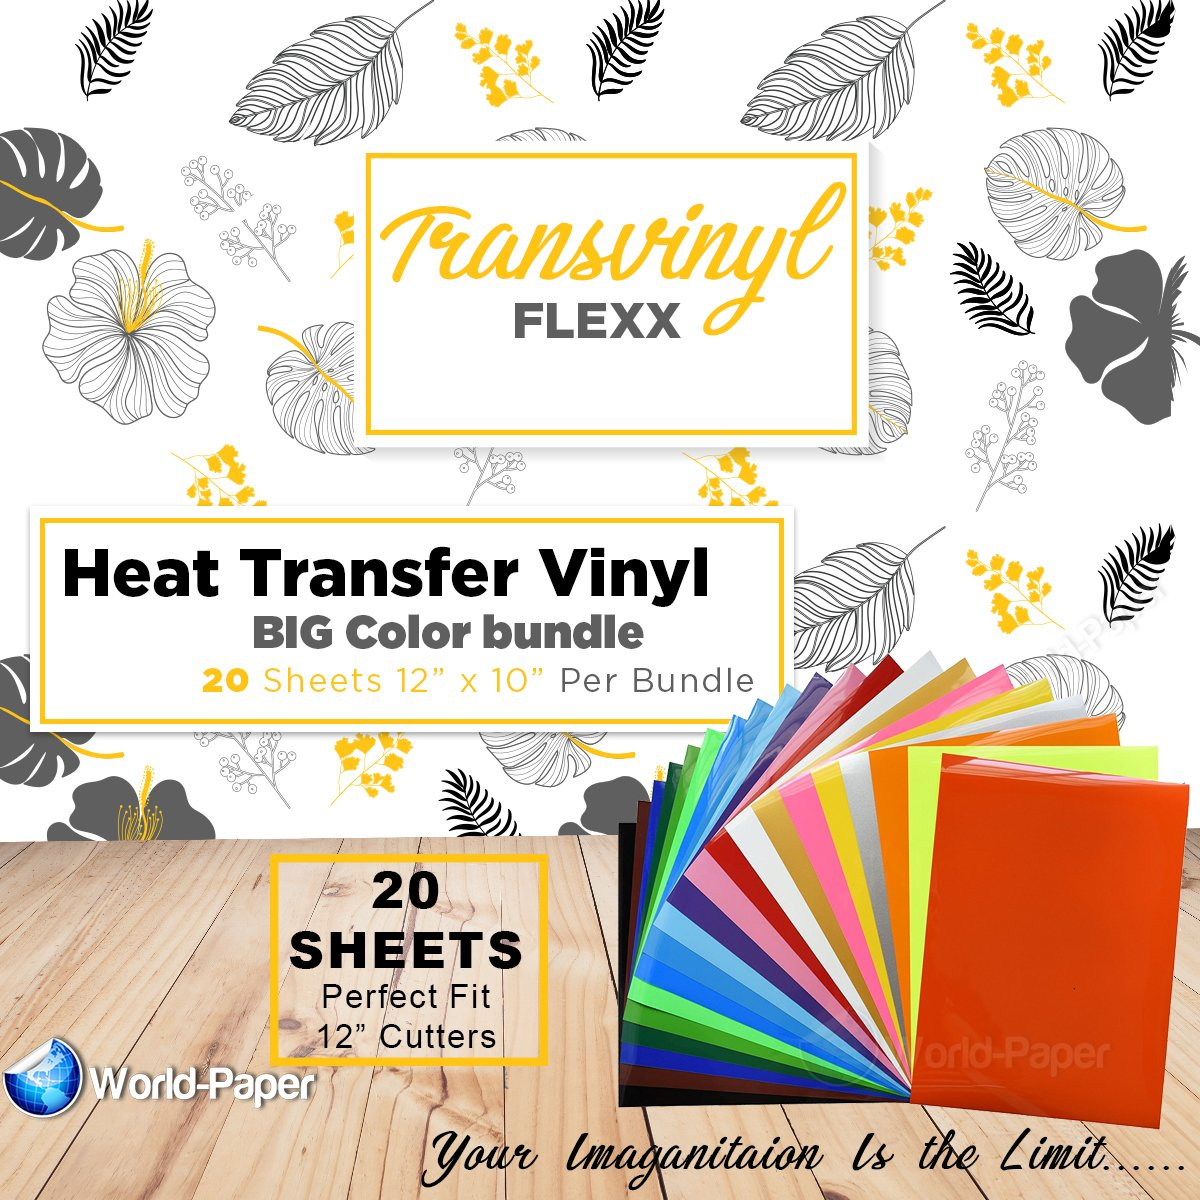 HTV Heat Transfer Vinyl Bundle 12x10-20 Multi-Color Sheets for Cricut Silhouette Cameo Or Heat Press Machine - Bonus PTFE Sheet Iron On Vinyl for DIY T-Shirts by world-paper